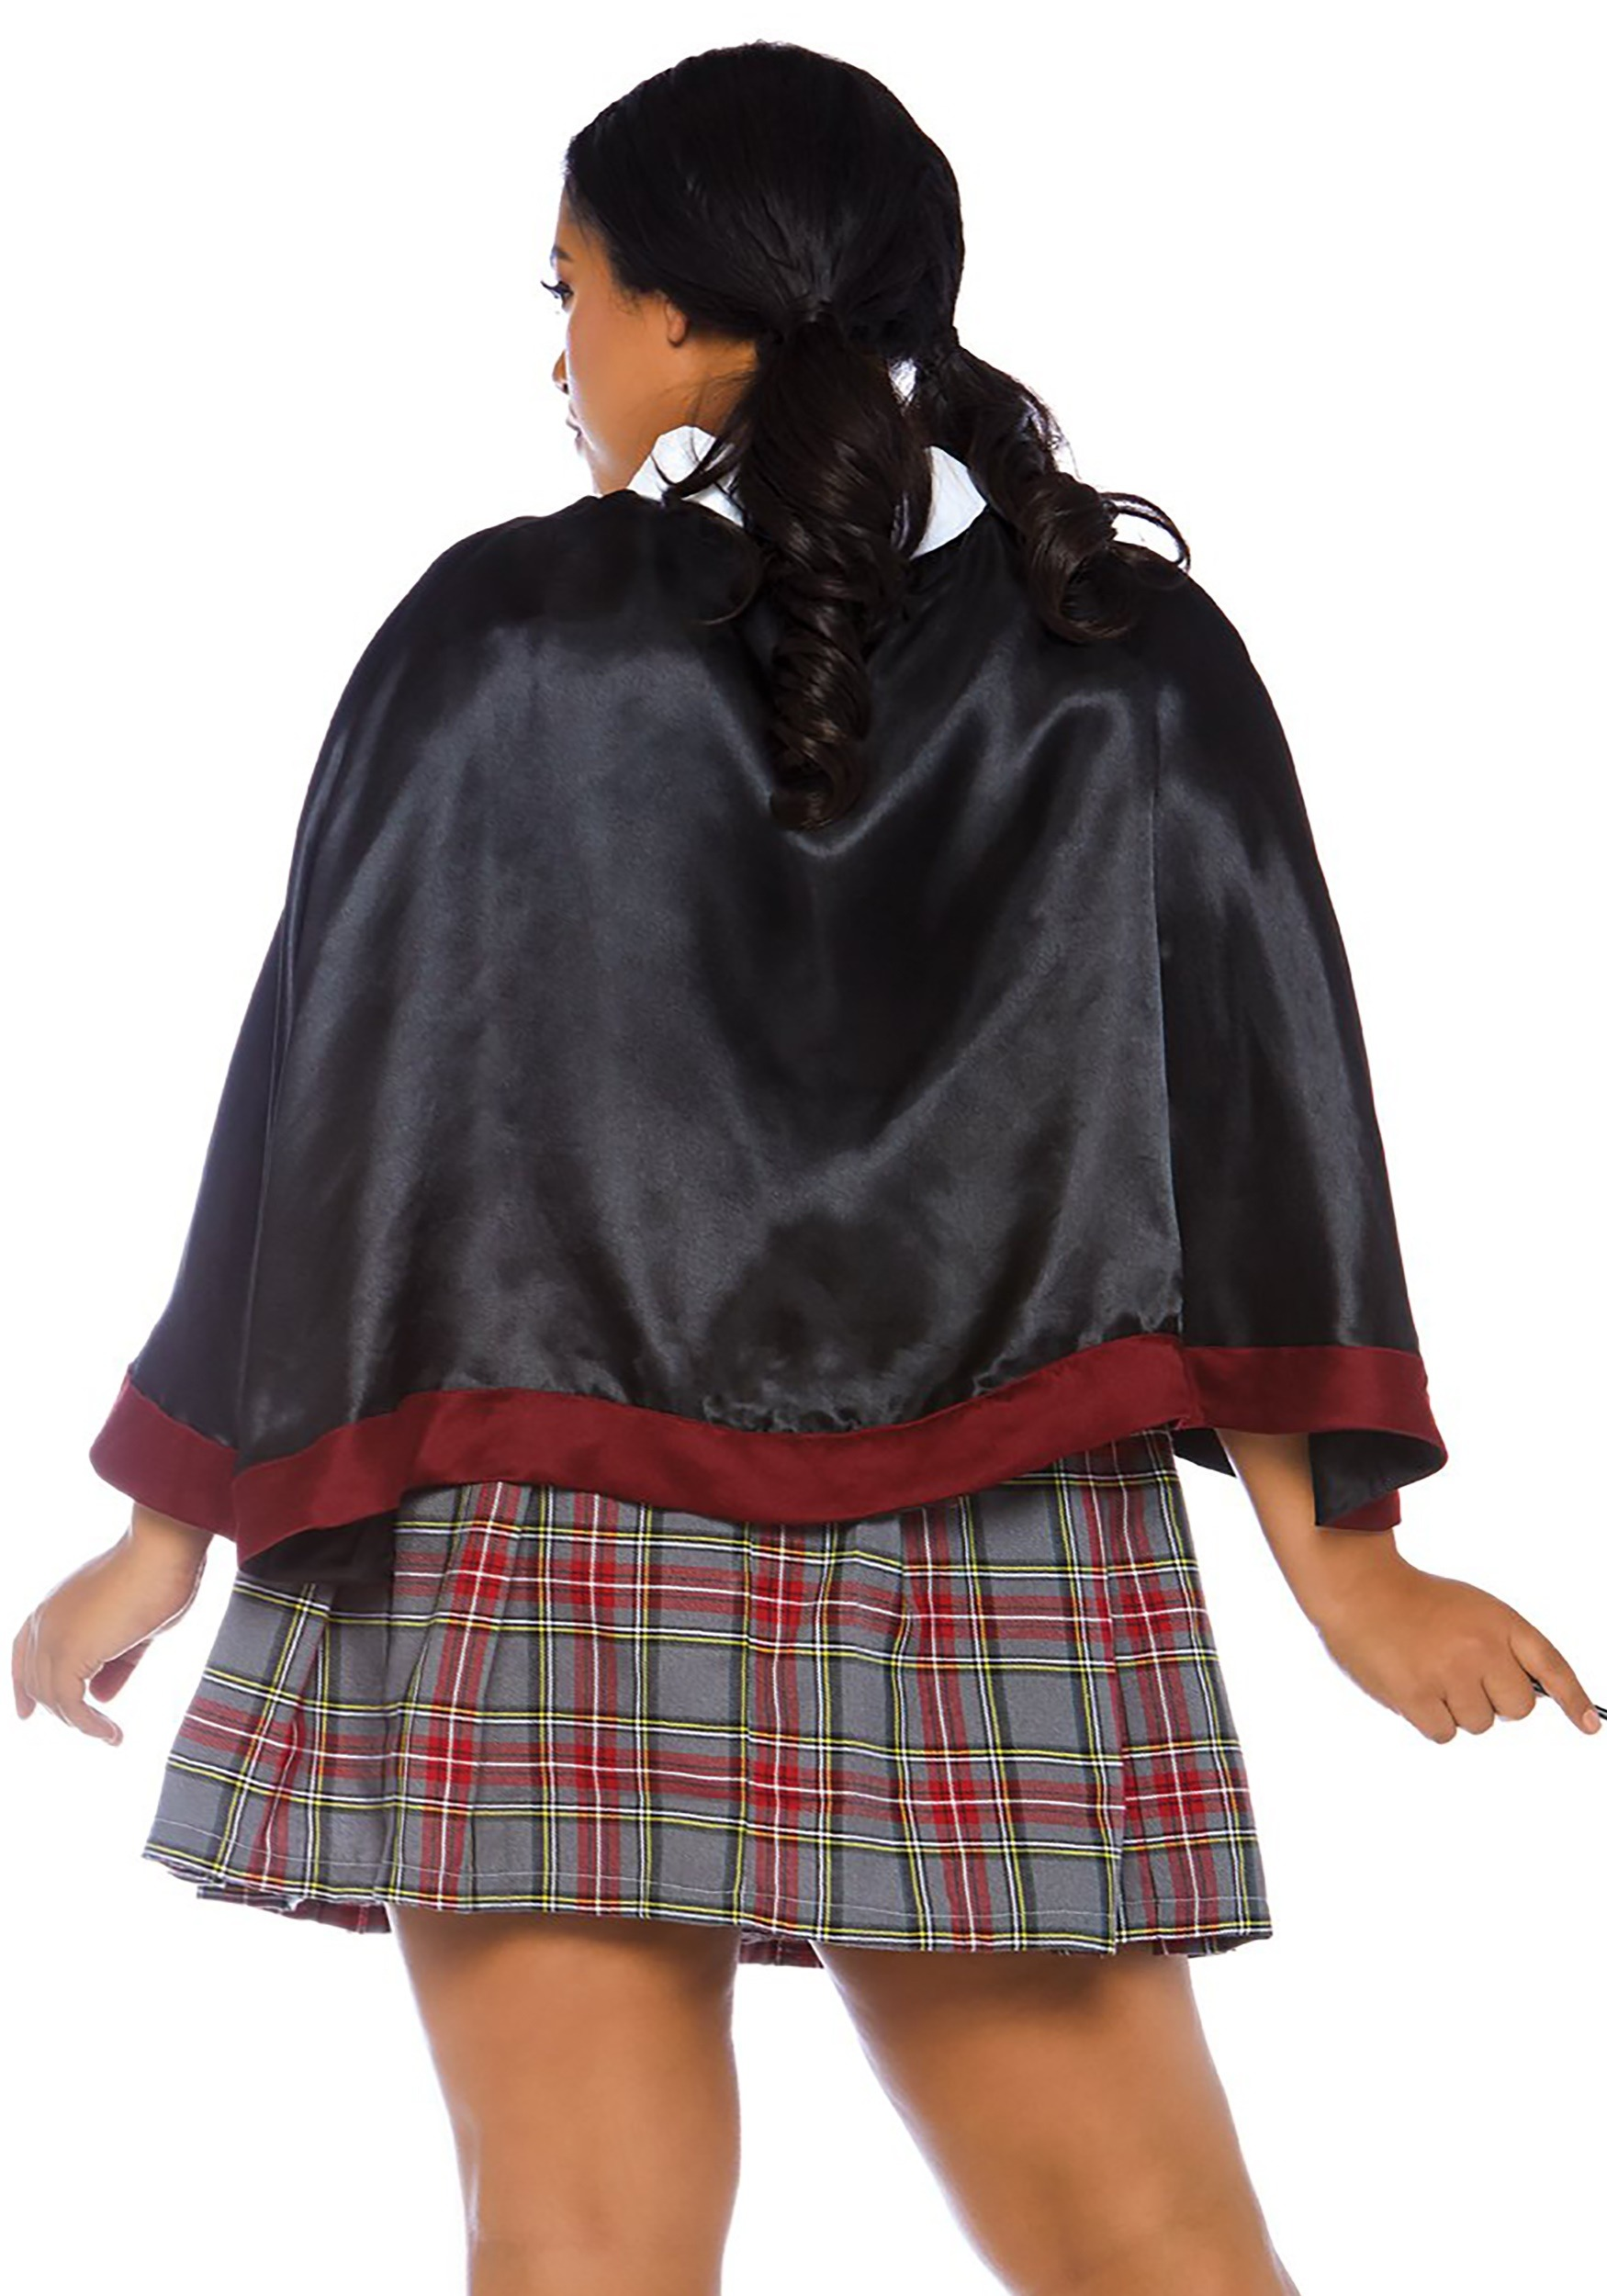 Plus Size Spell Casting School Girl Costume For Women-5750